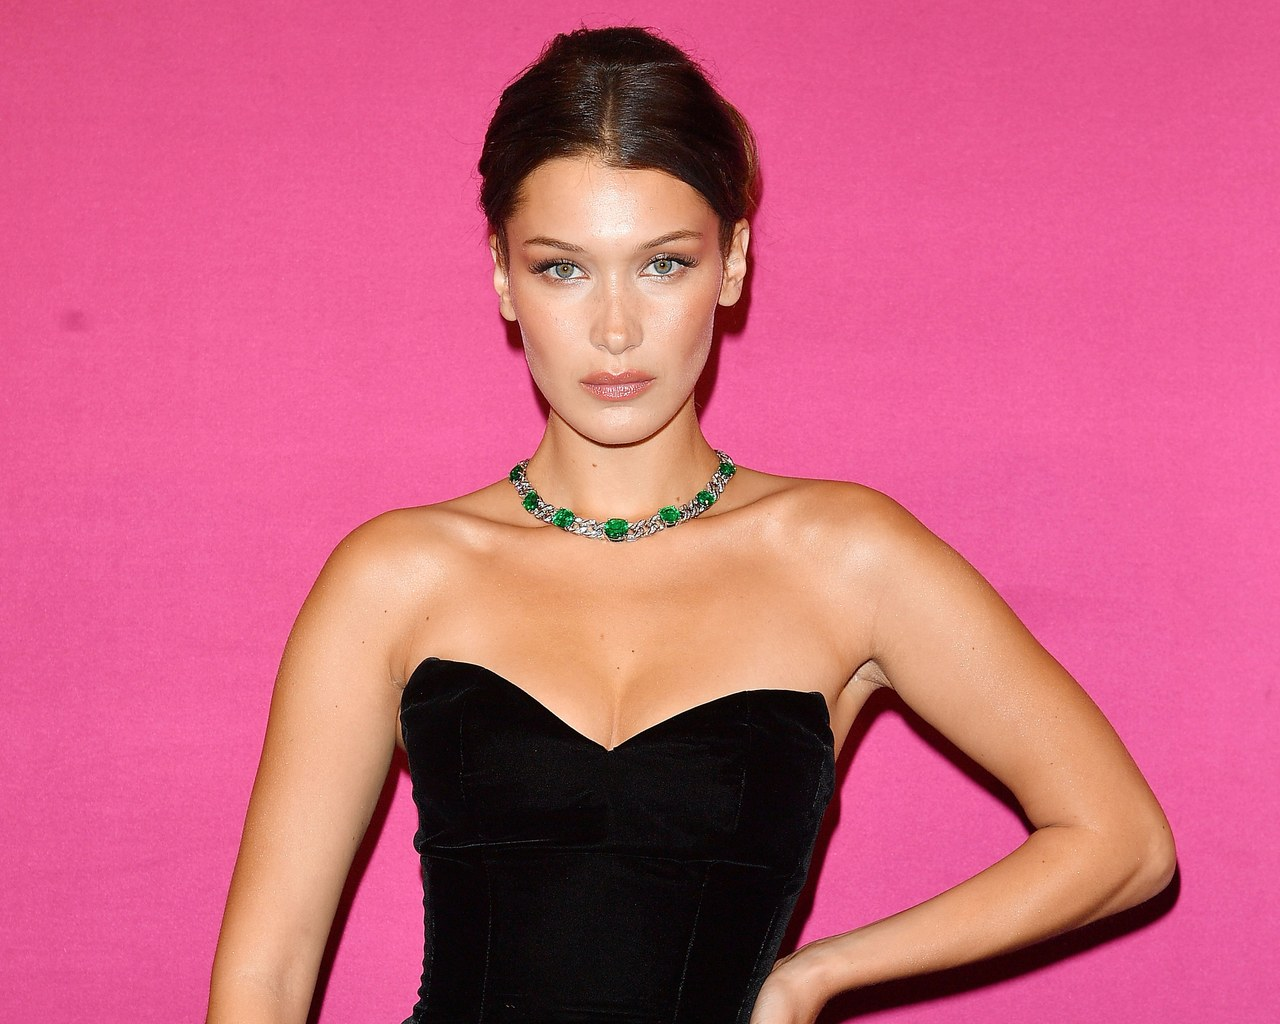 bella-hadid-says-she-gets-hurt-by-comments-on-instagram